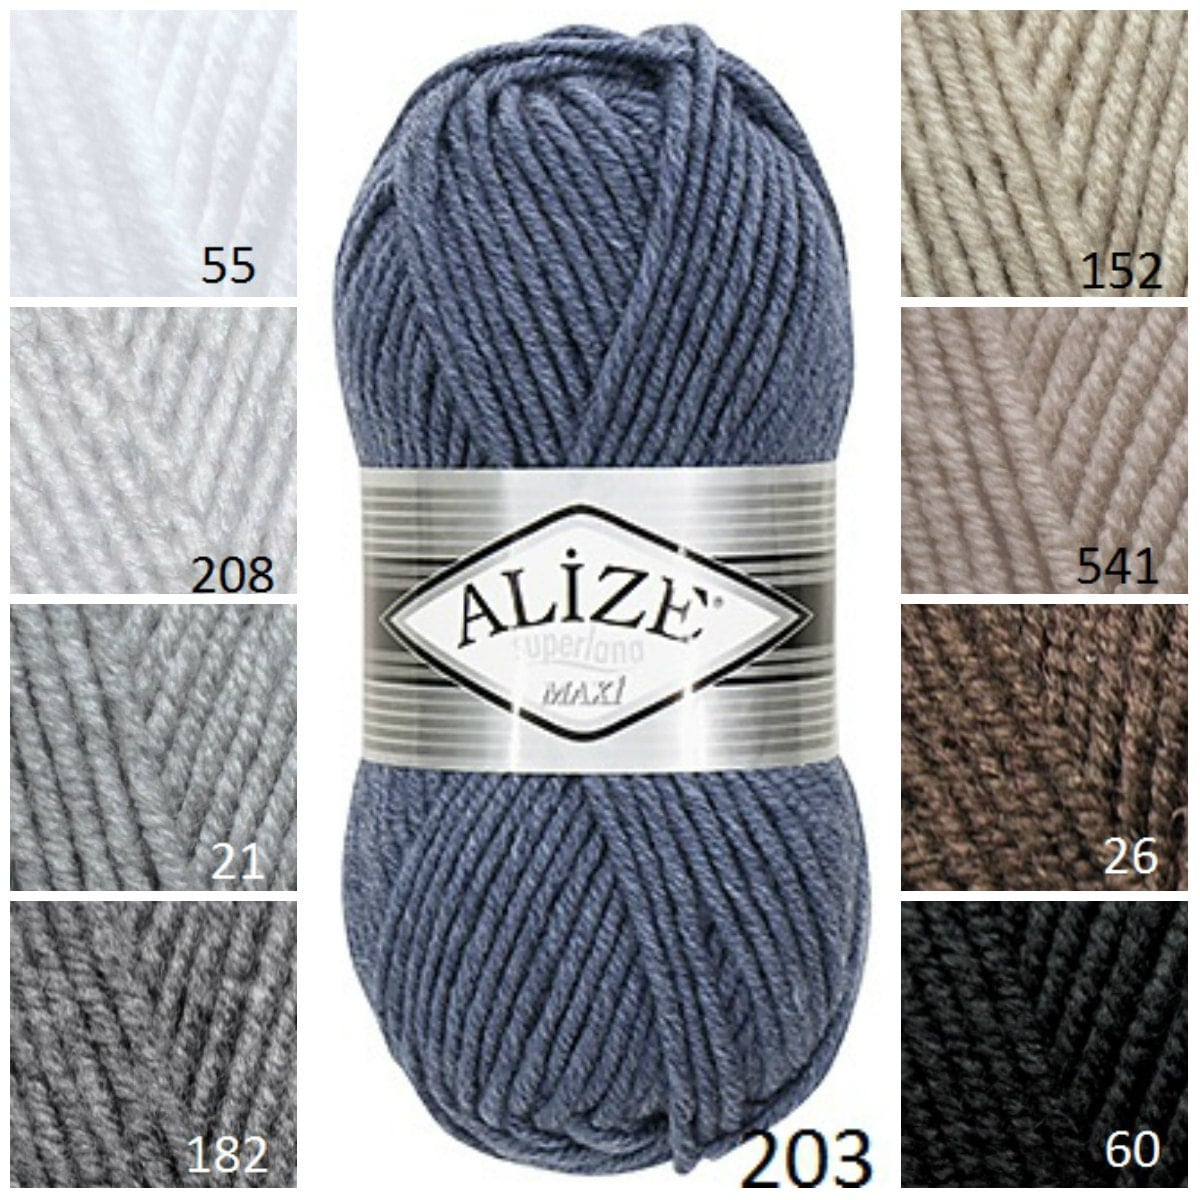 Knitting Supplies Canada : Alİze maxİ classic yarn hat knitting supplies